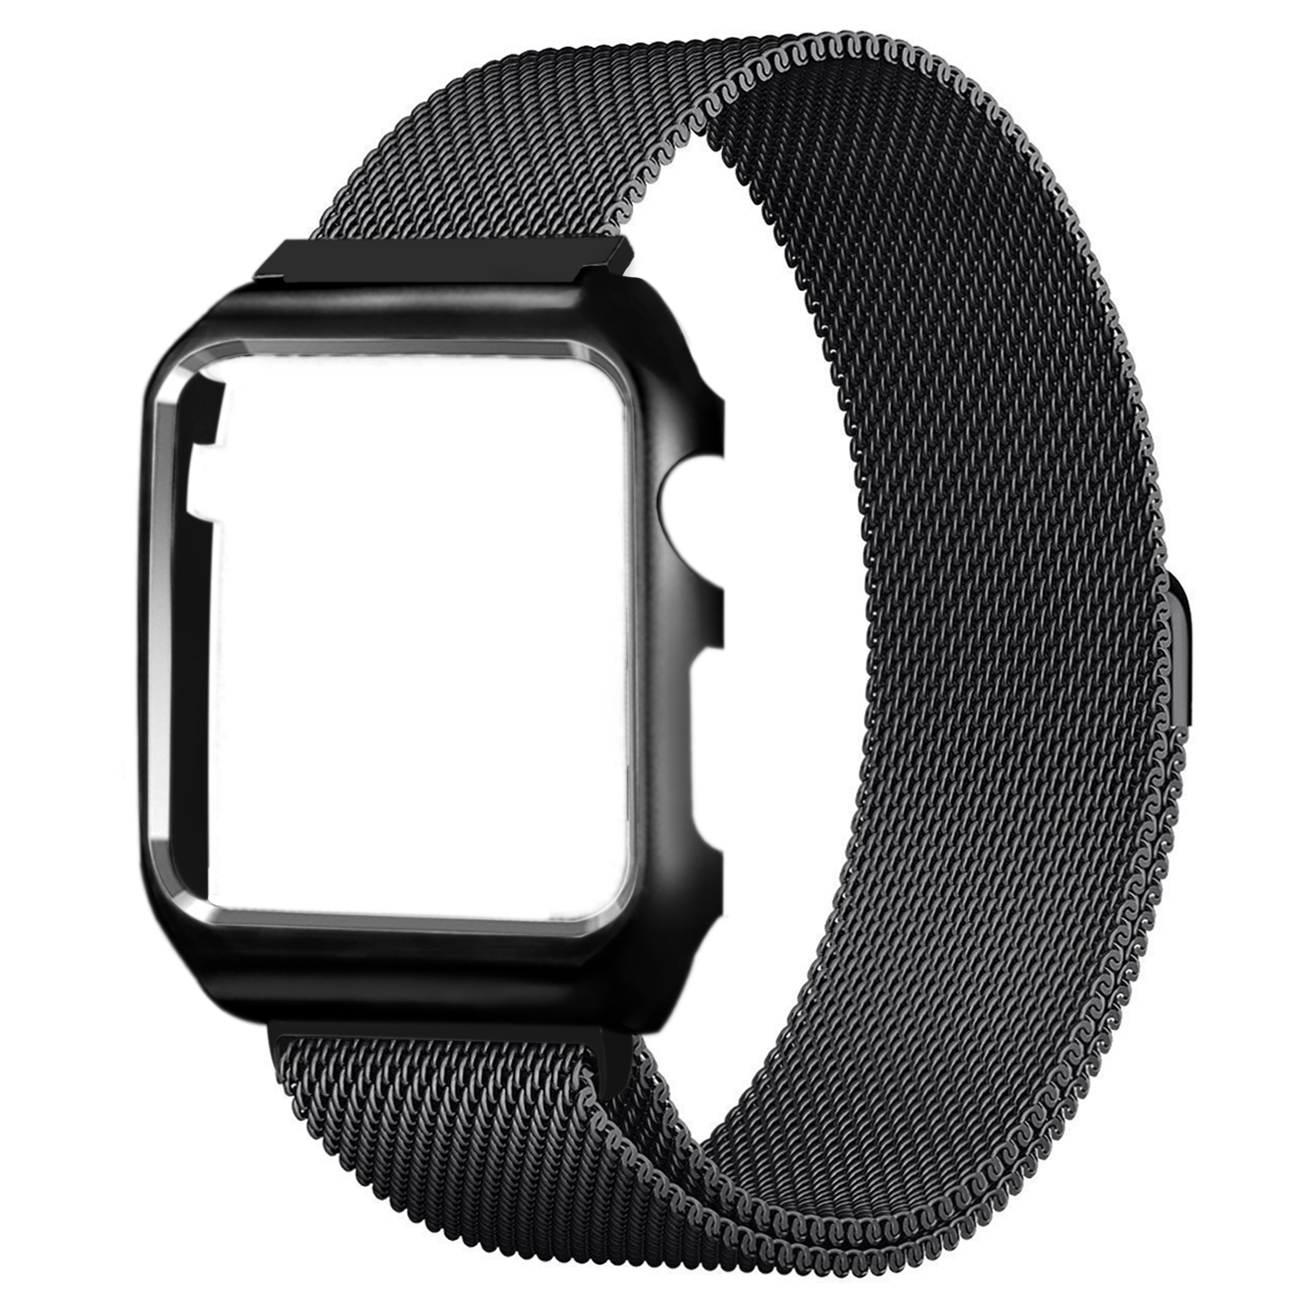 Stainless Steel Milanese Loop Mesh Replacement Band with Frame Adjustable Magnetic Closure Clasp for Apple Watch Series 1, Series 2, Series 3, 38mm